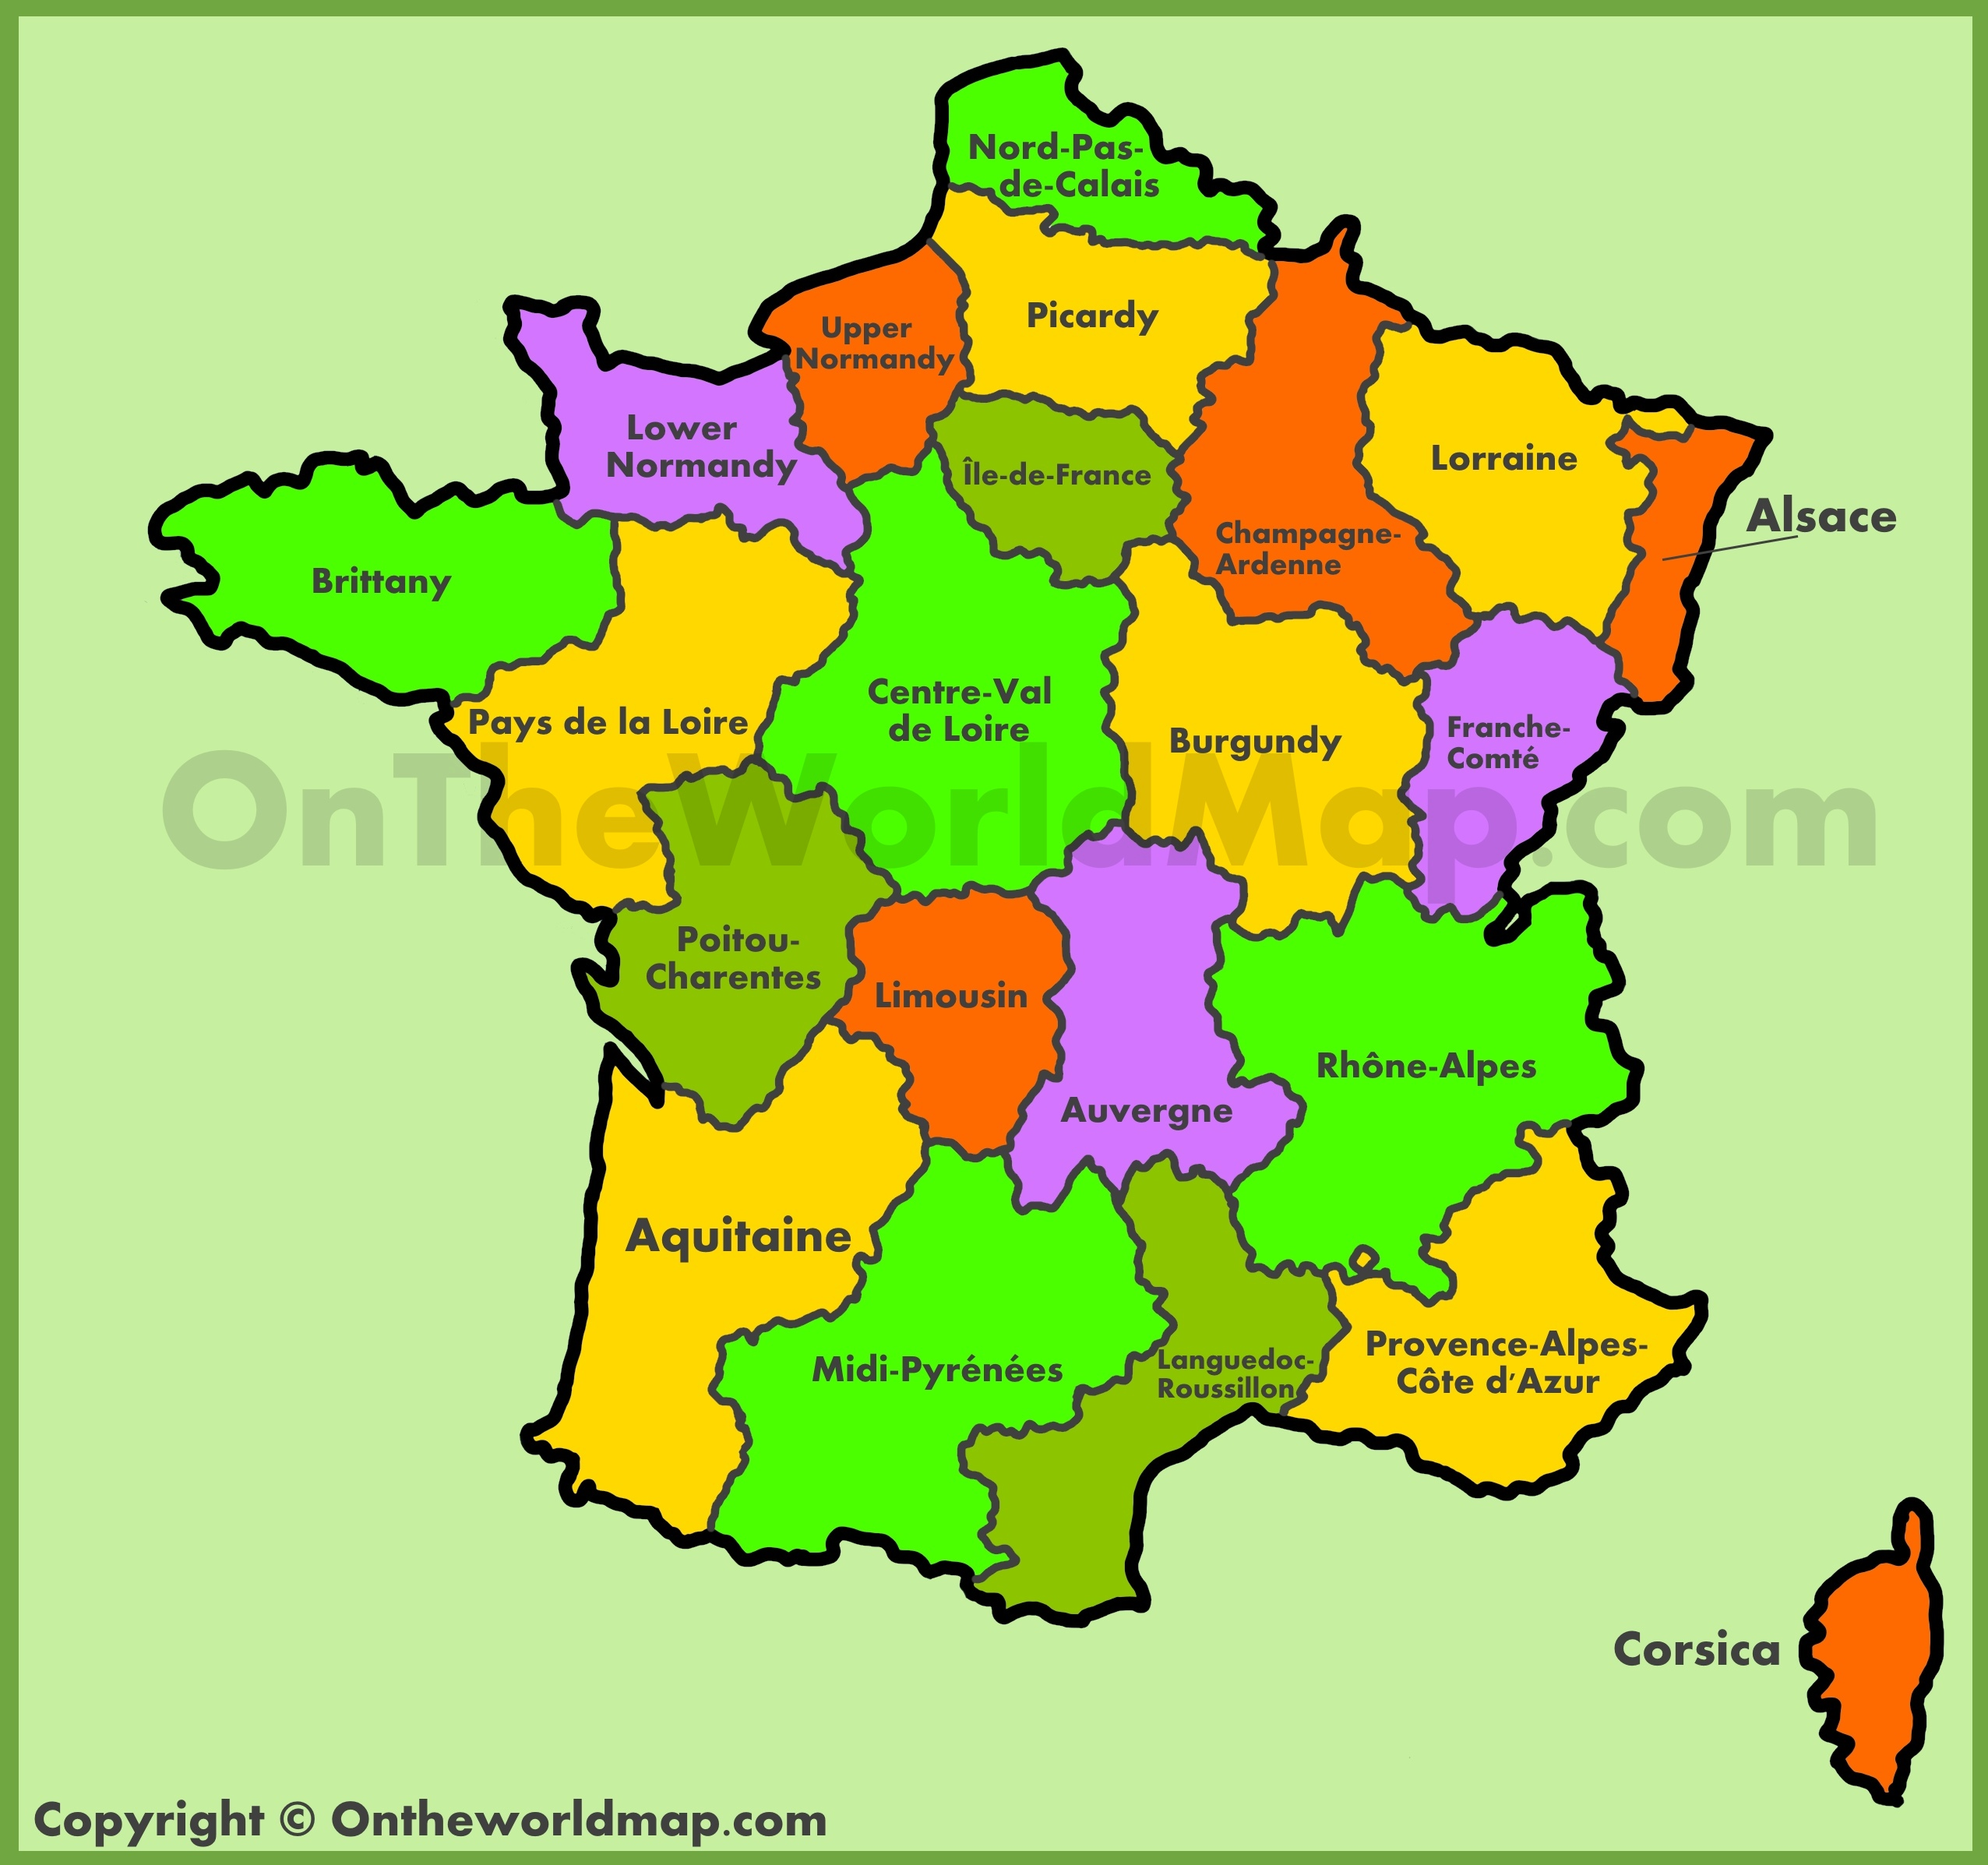 Regions De France Map Of Old Regions Of France Old Administrative Map Of France